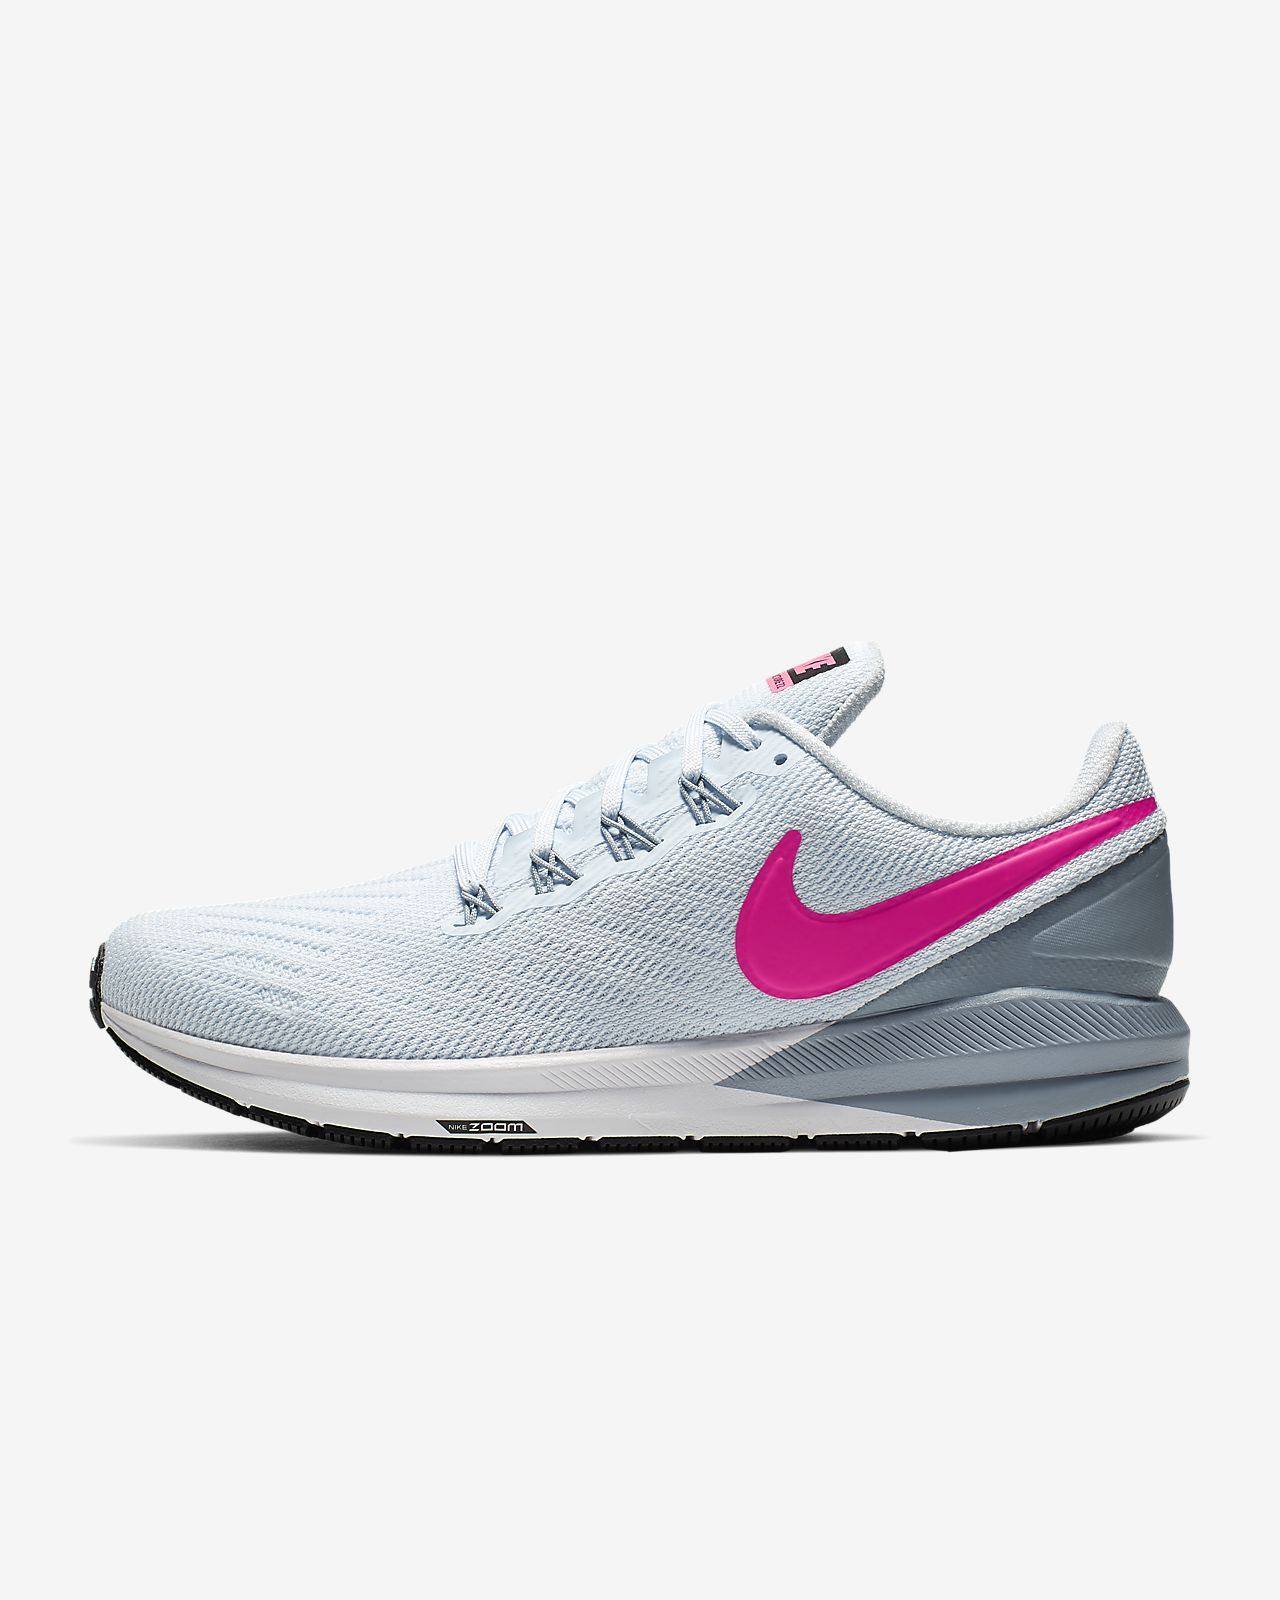 46cd5b2f832 Nike Air Zoom Structure 22 Women s Running Shoe. Nike.com